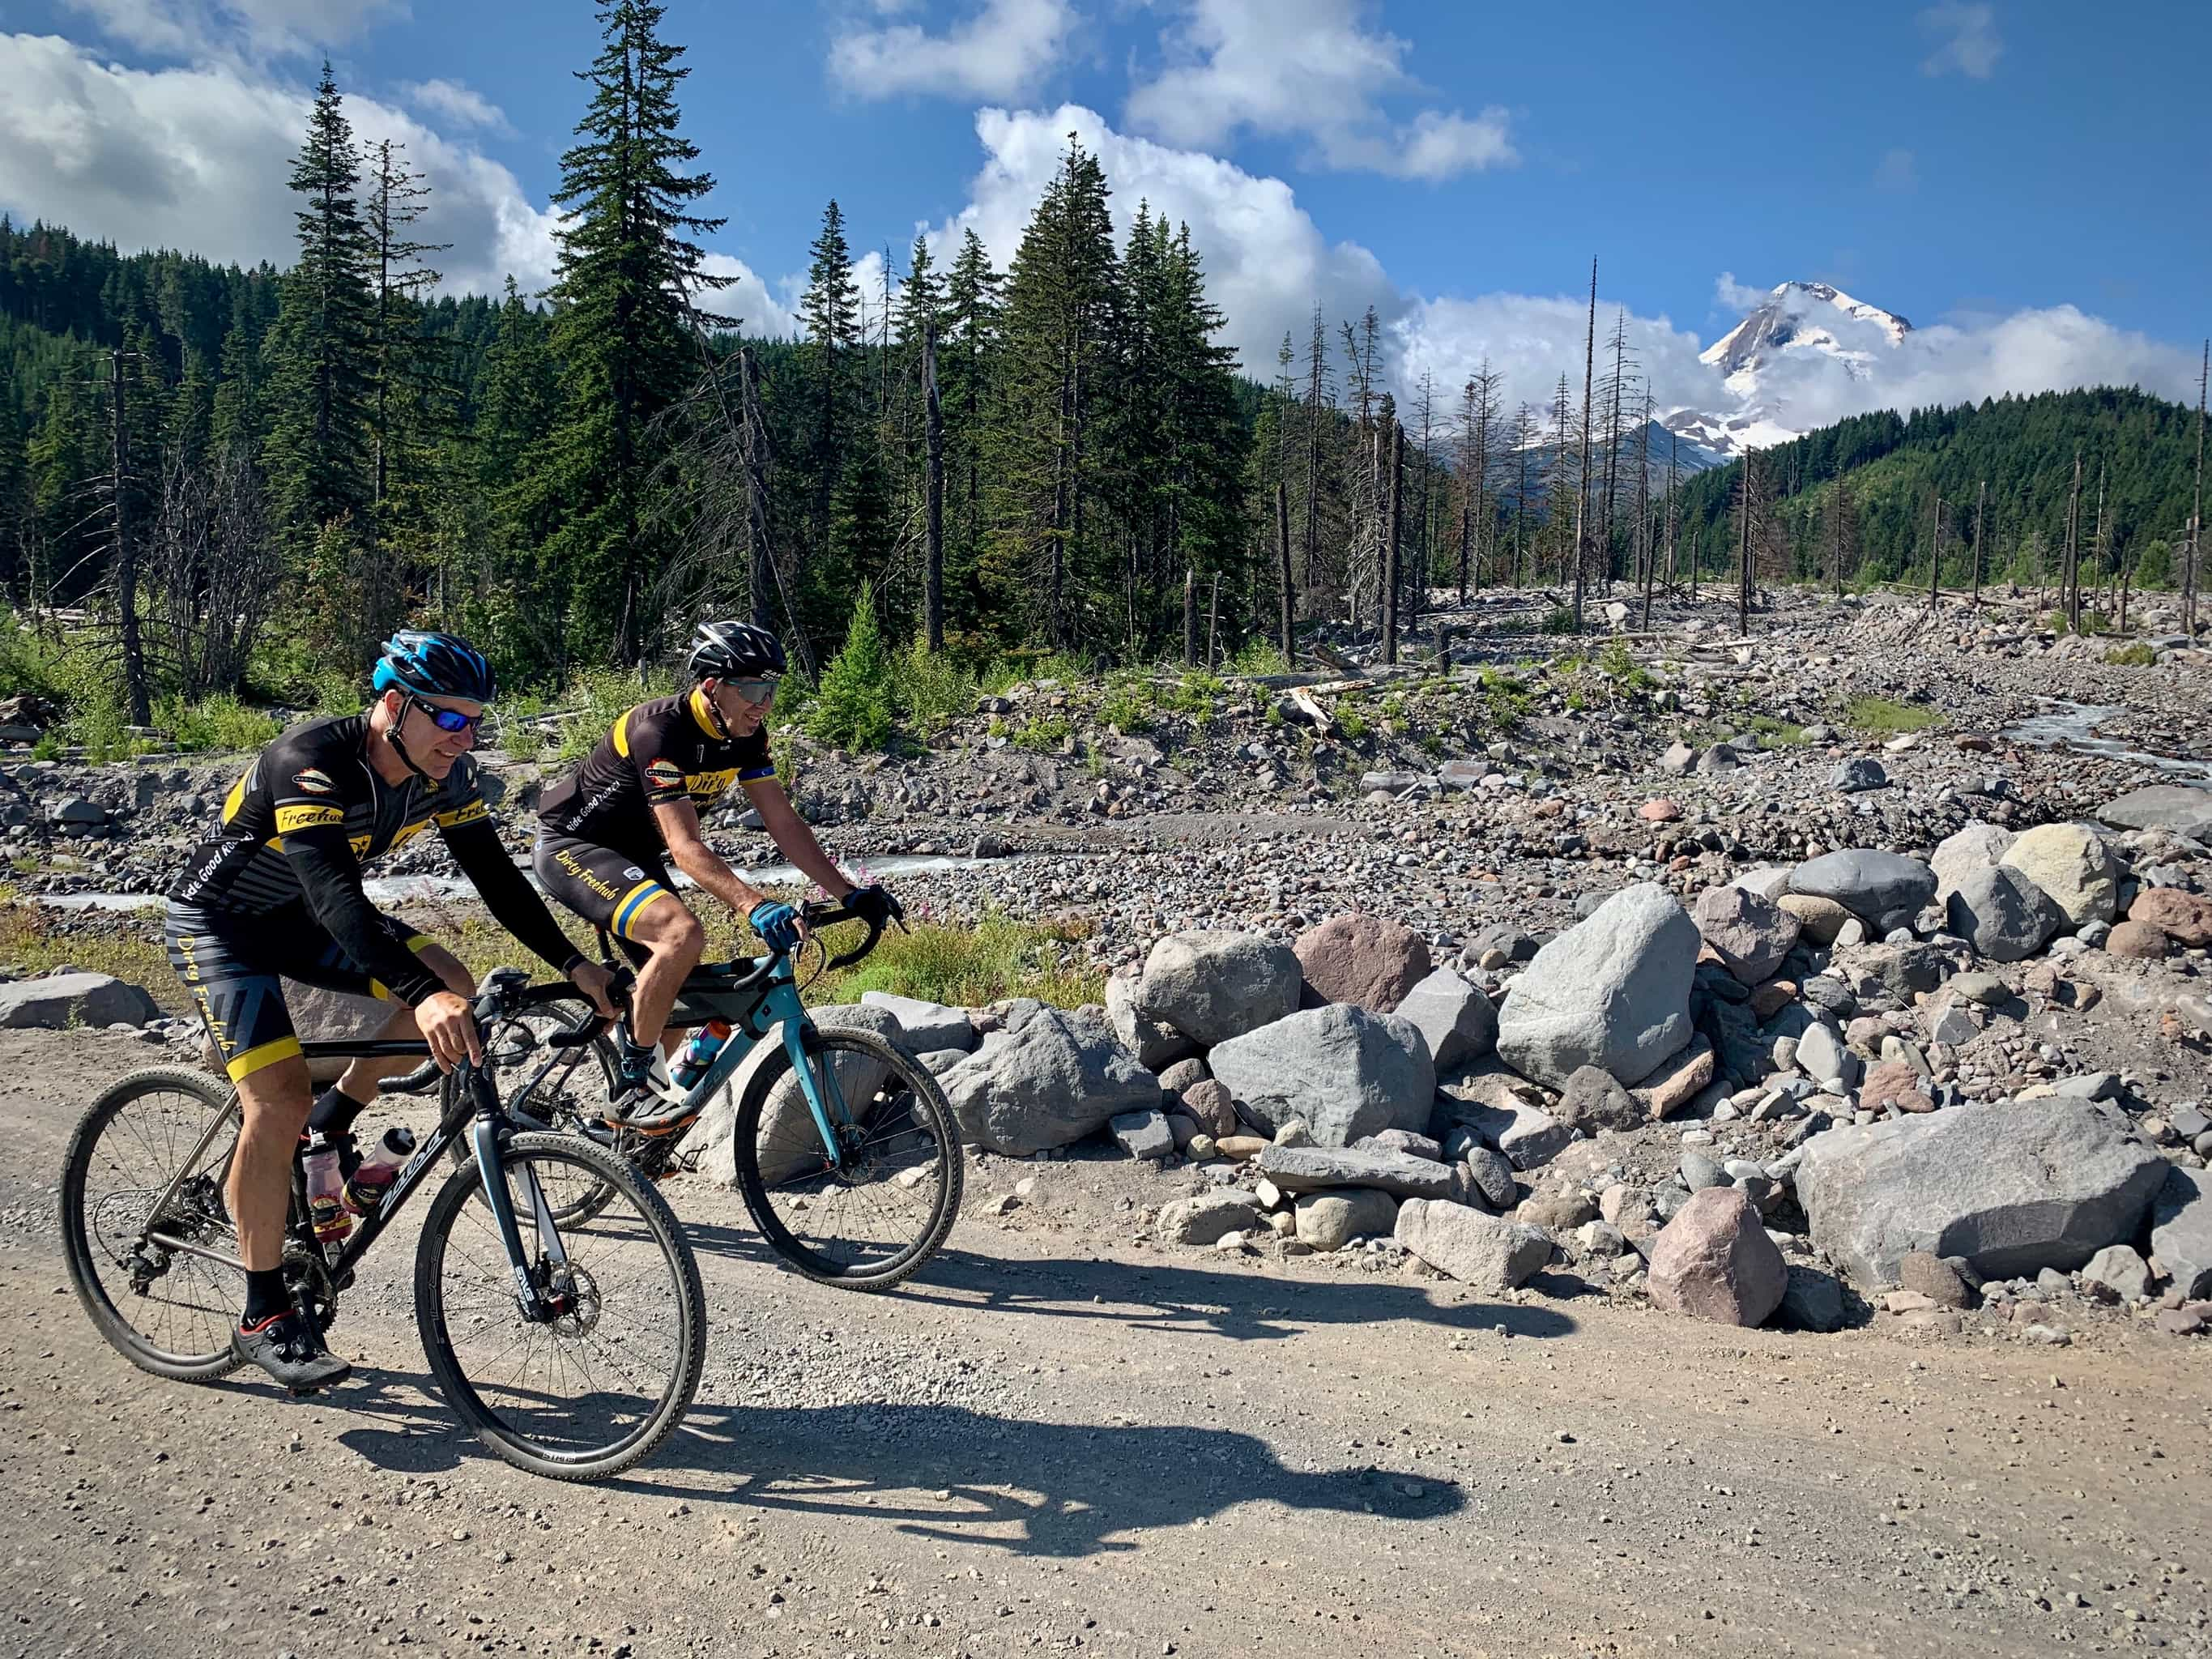 Cyclists crossing over washed out section of Laurance Lake road near Parkdale, Oregon.